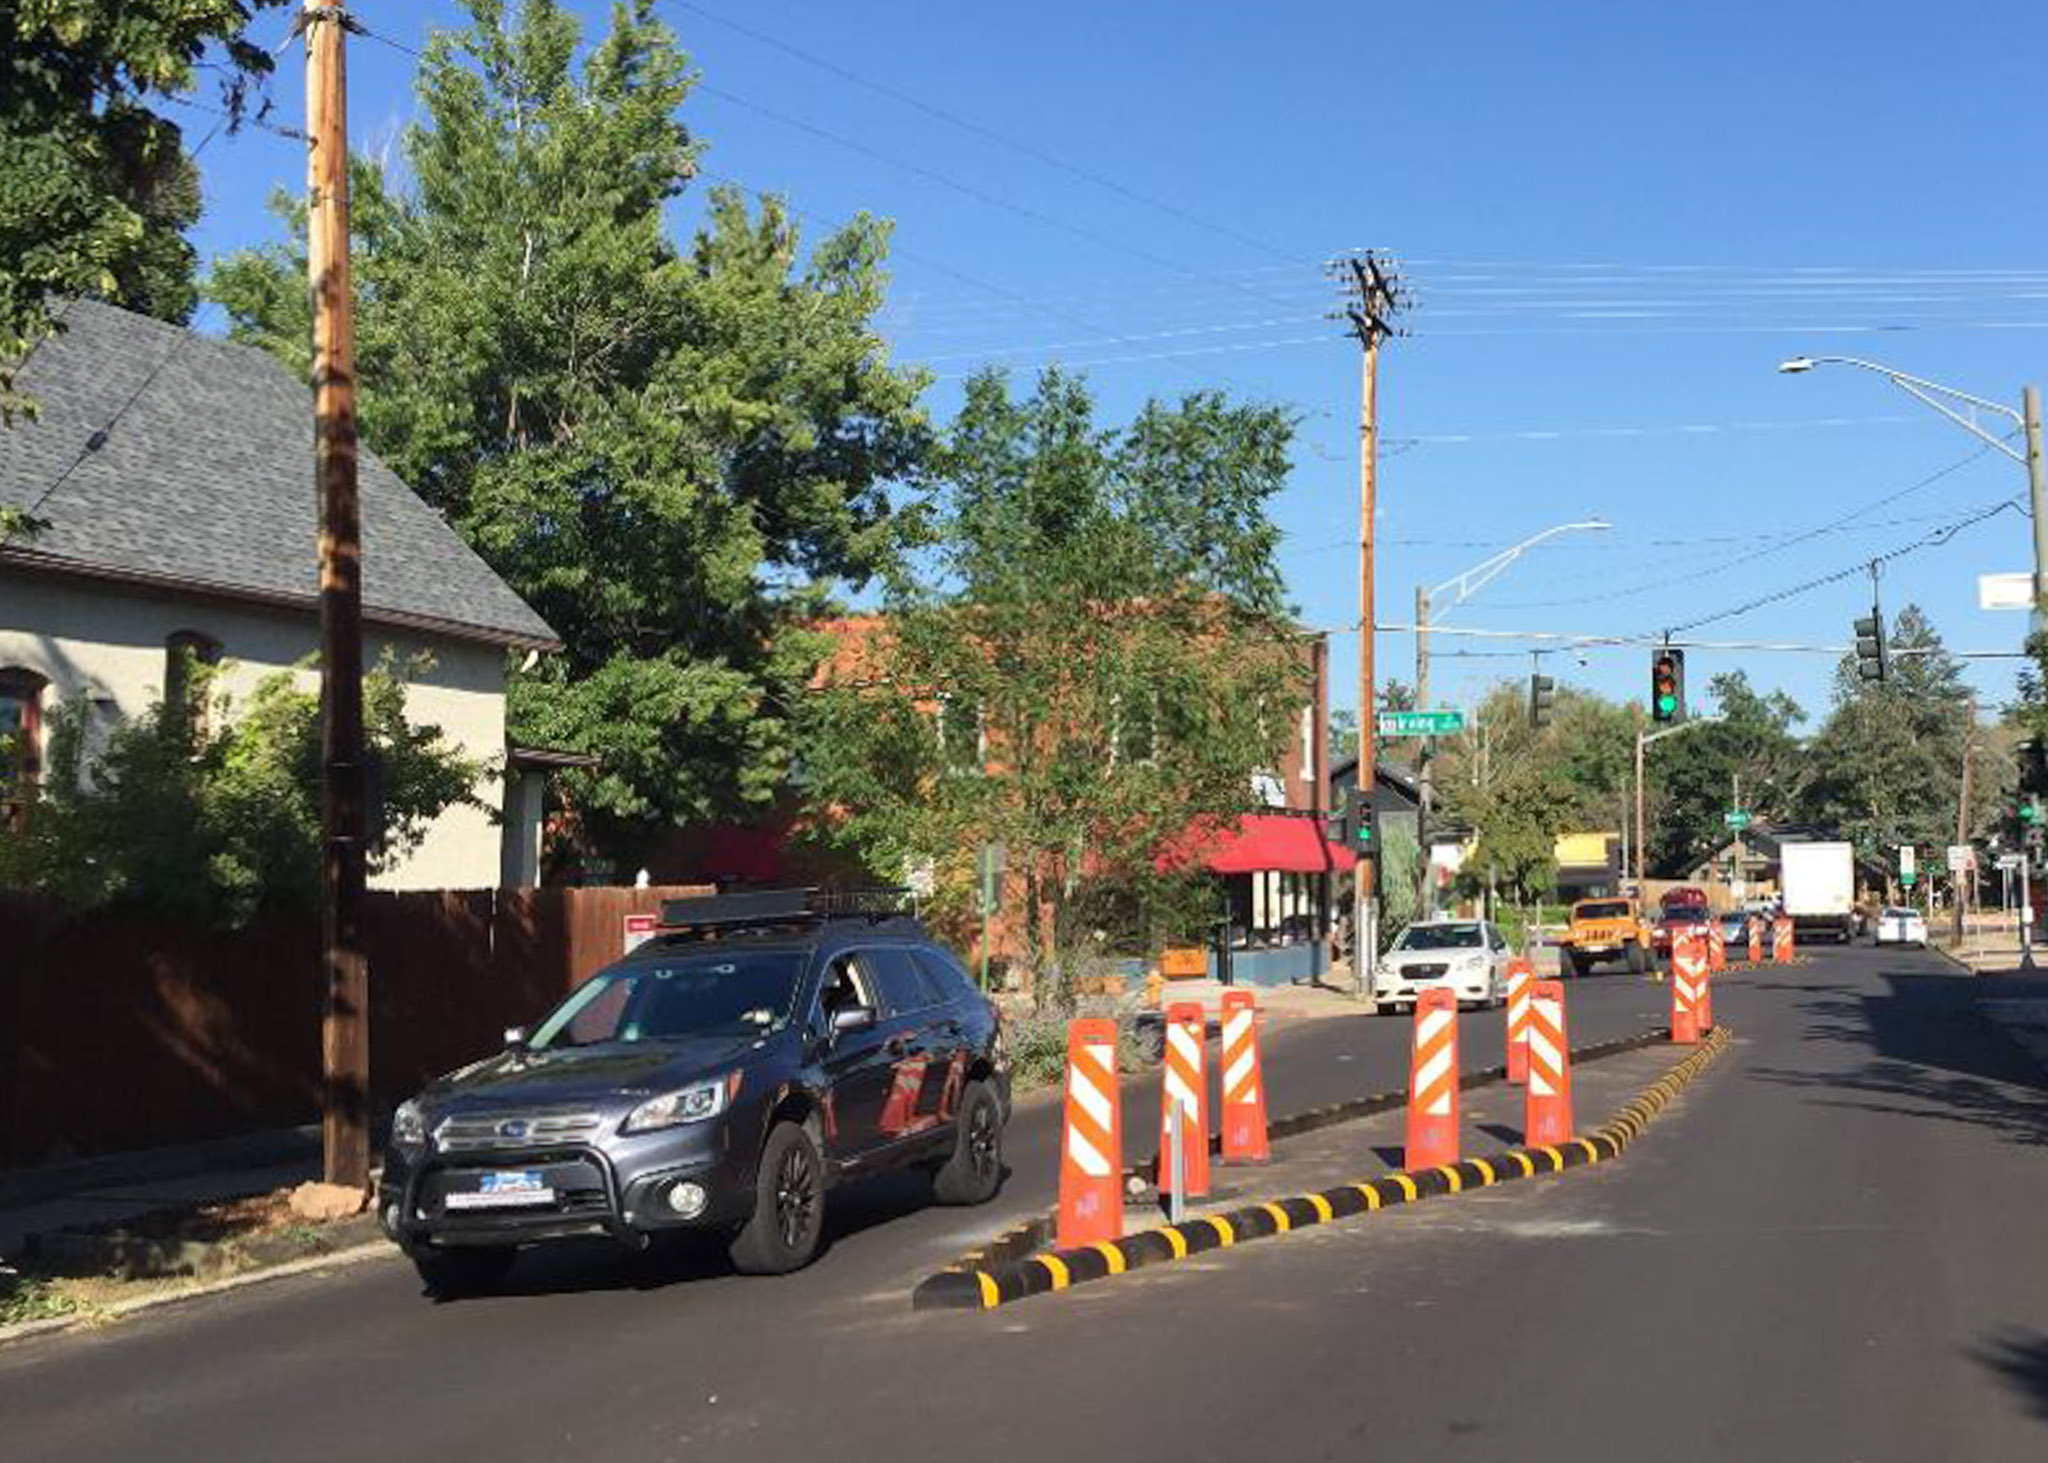 traffic calming measures at 32nd and Julian streets